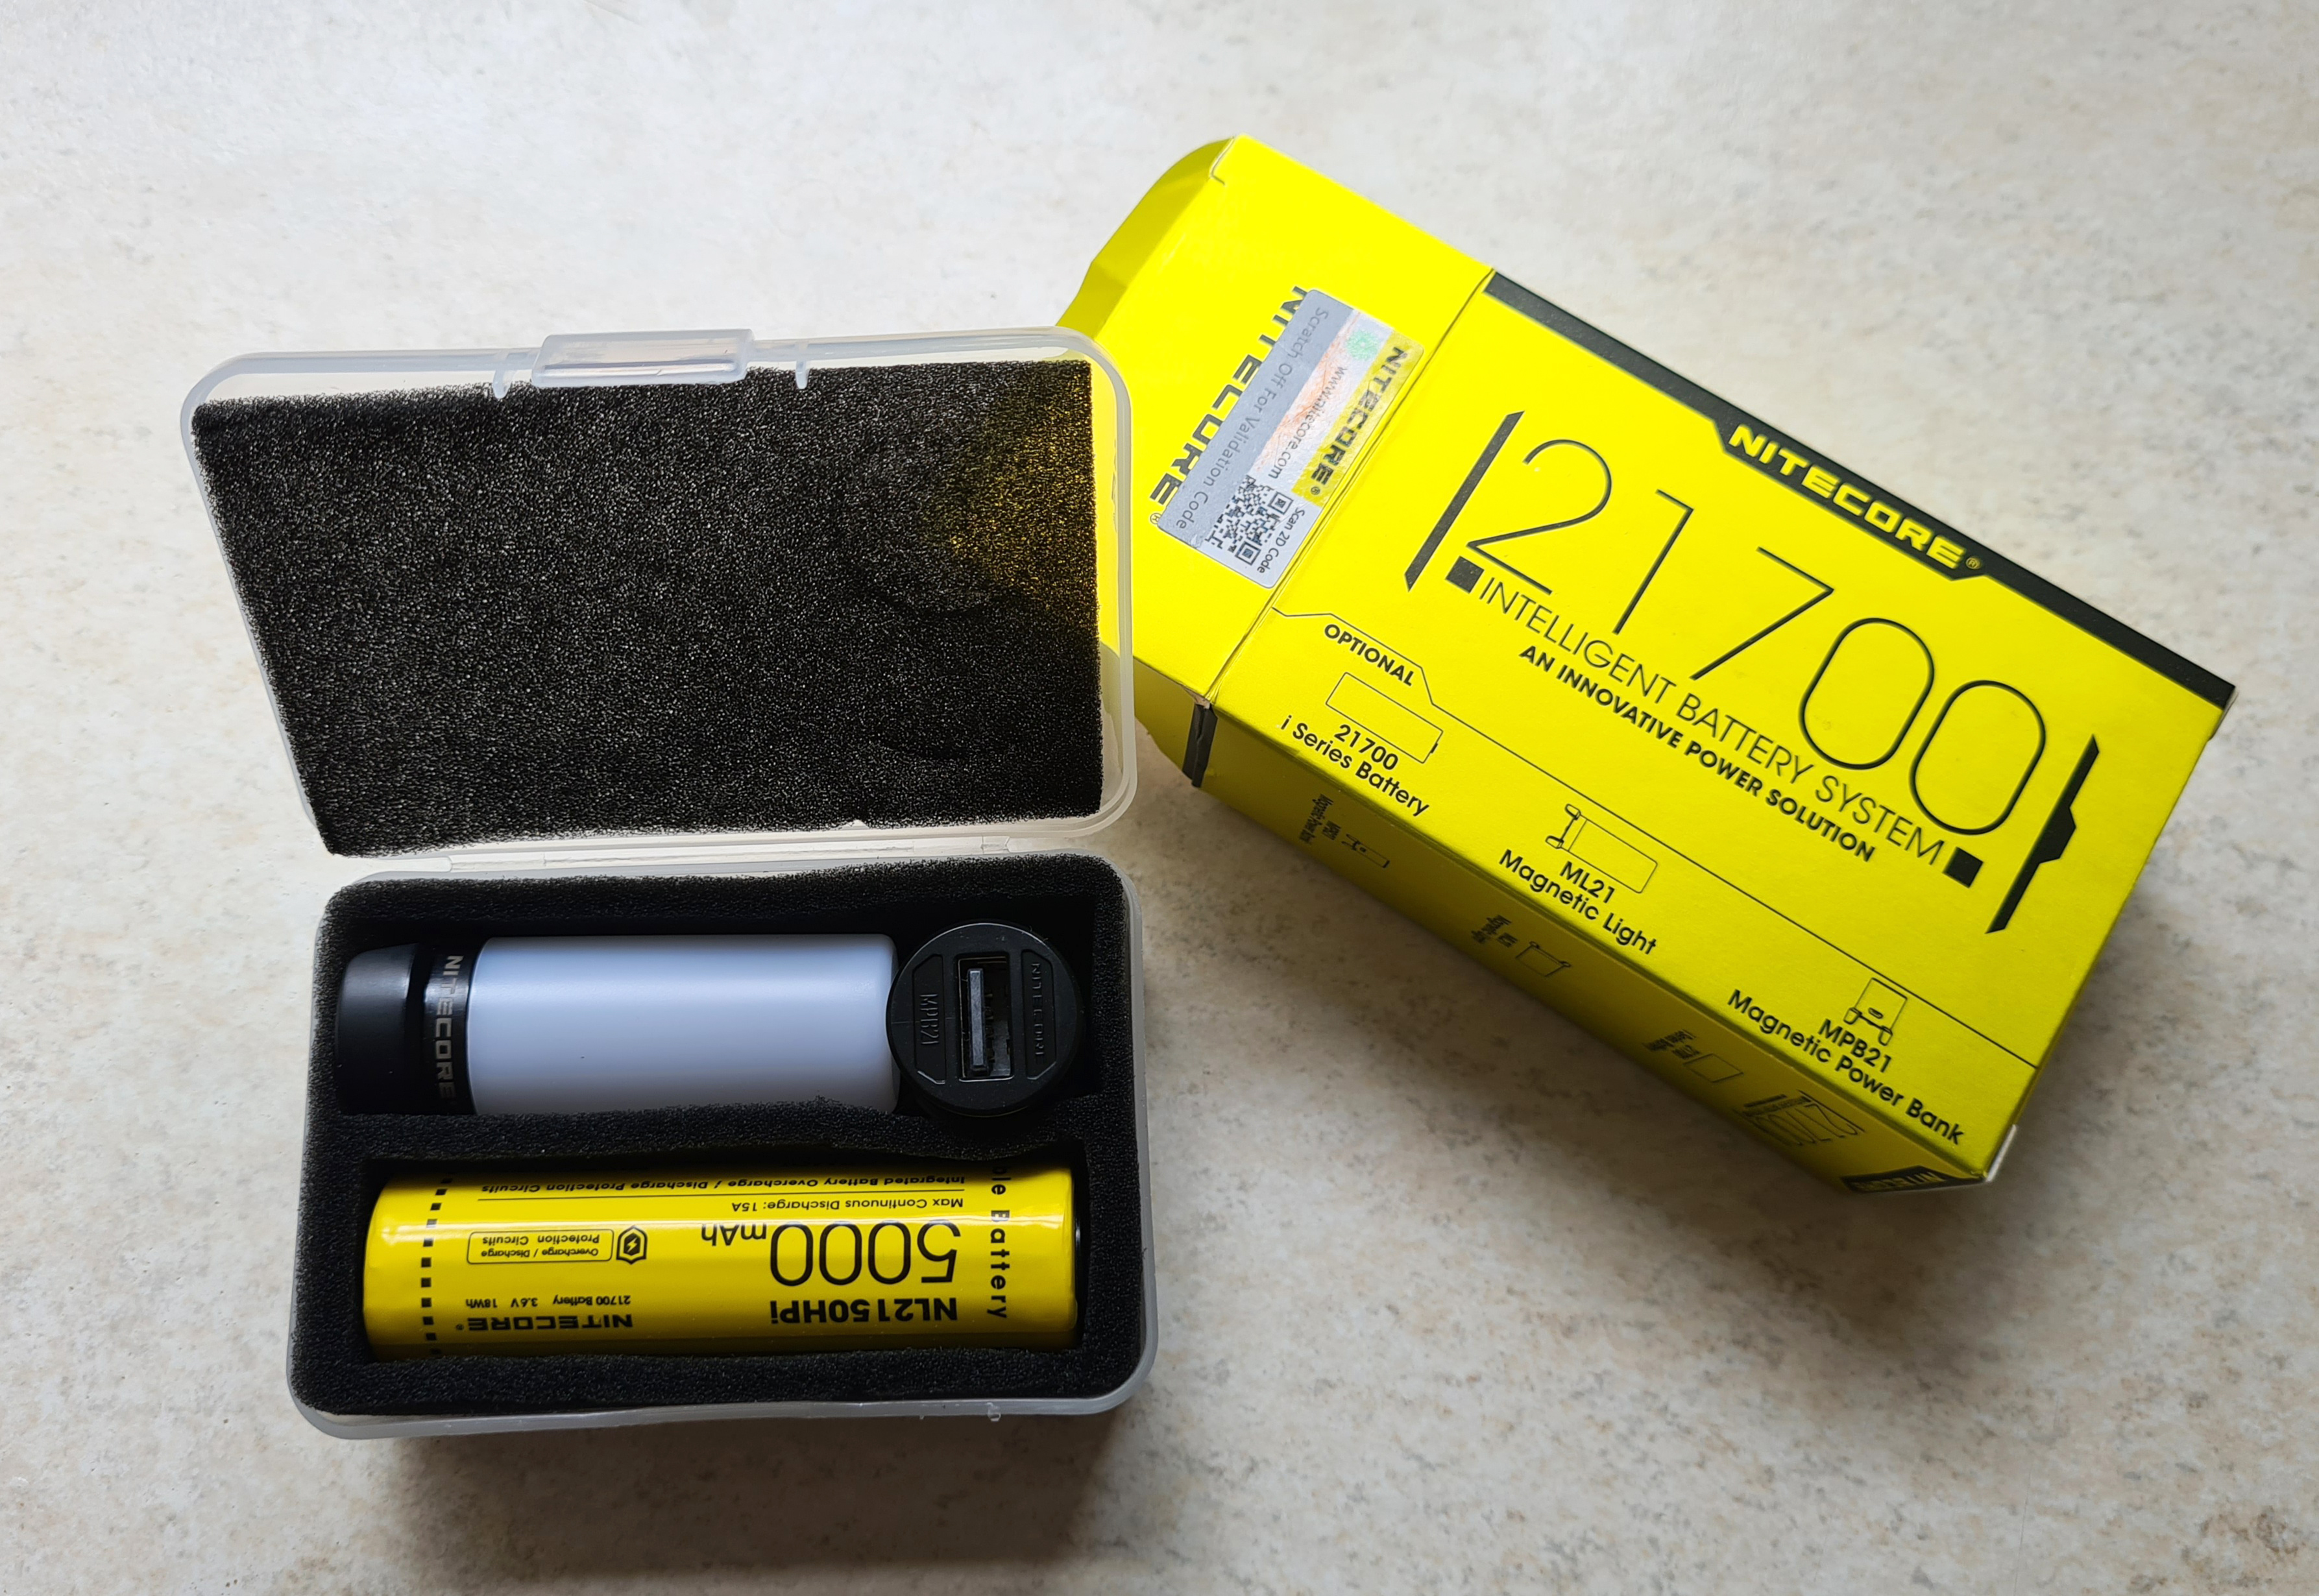 The three components of the Nitecore Intelligent Battery System- 21700 i series battery, ML21 magnetic light and MPN21 magnetic power bank